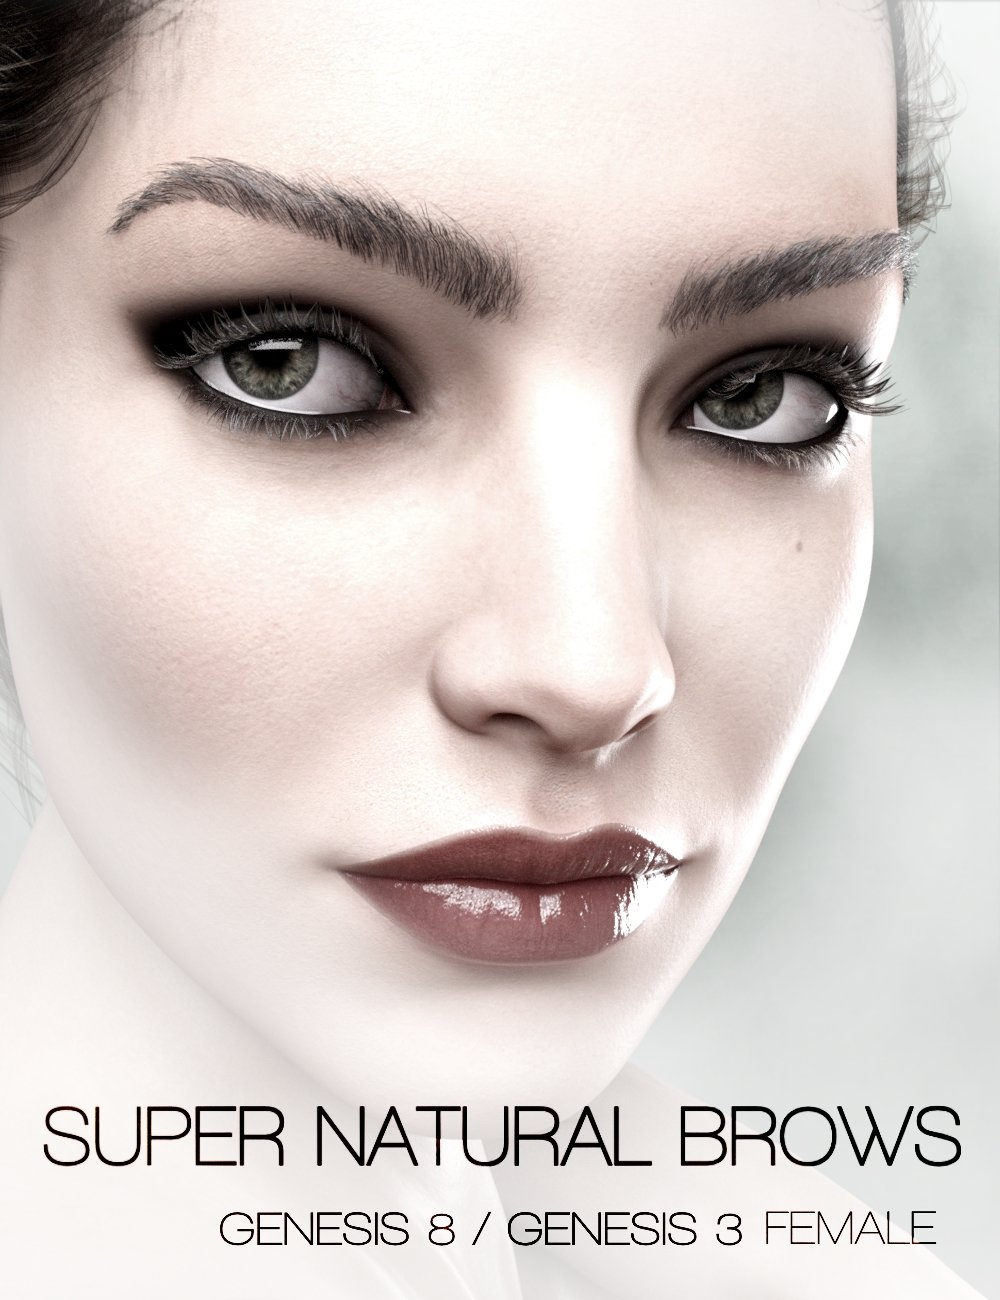 Super Natural Brows Merchant Resource for Genesis 8 and 3 Female by: RedzStudio, 3D Models by Daz 3D